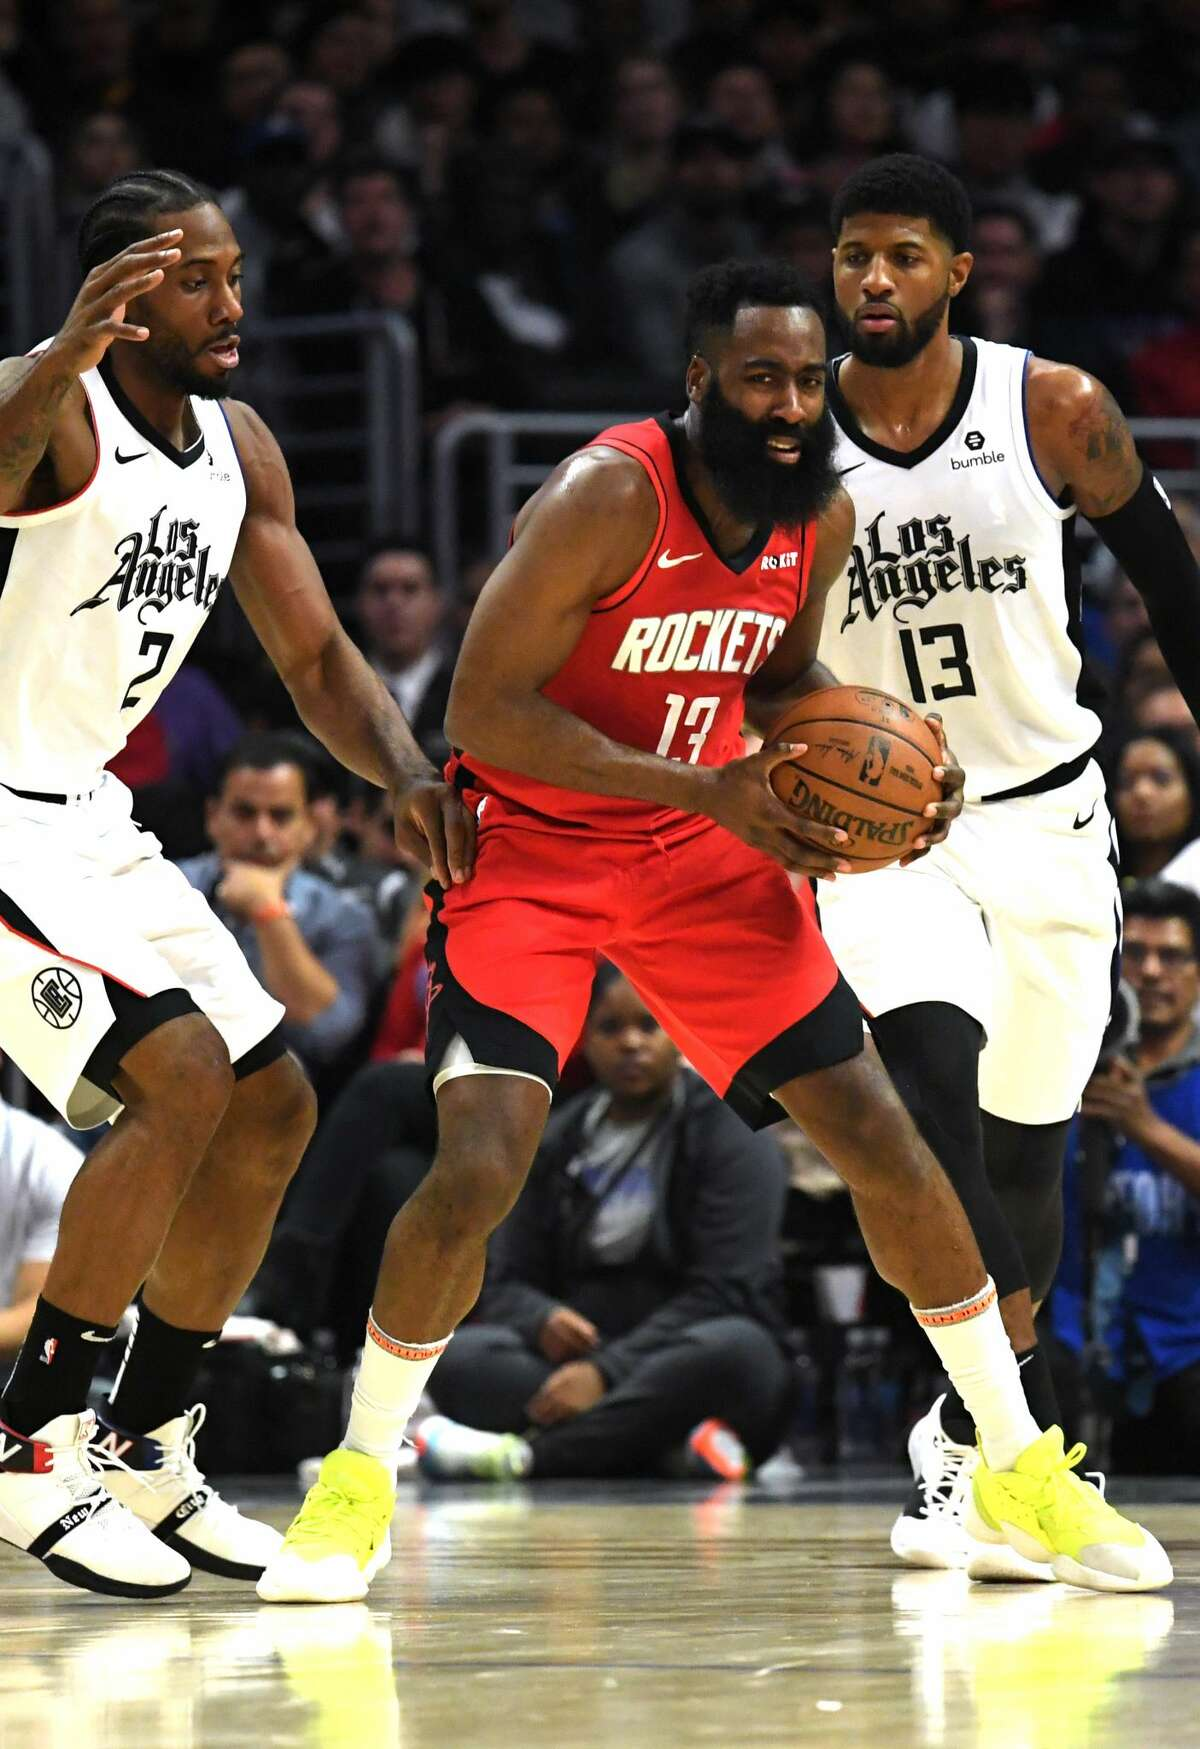 LOS ANGELES, CALIFORNIA - DECEMBER 19: James Harden #13 of the Houston Rockets is guarded by Kawhi Leonard #2 and Paul George #13 of the LA Clippers during the first half of the game at Staples Center on December 19, 2019 in Los Angeles, California. (Photo by Harry How/Getty Images)